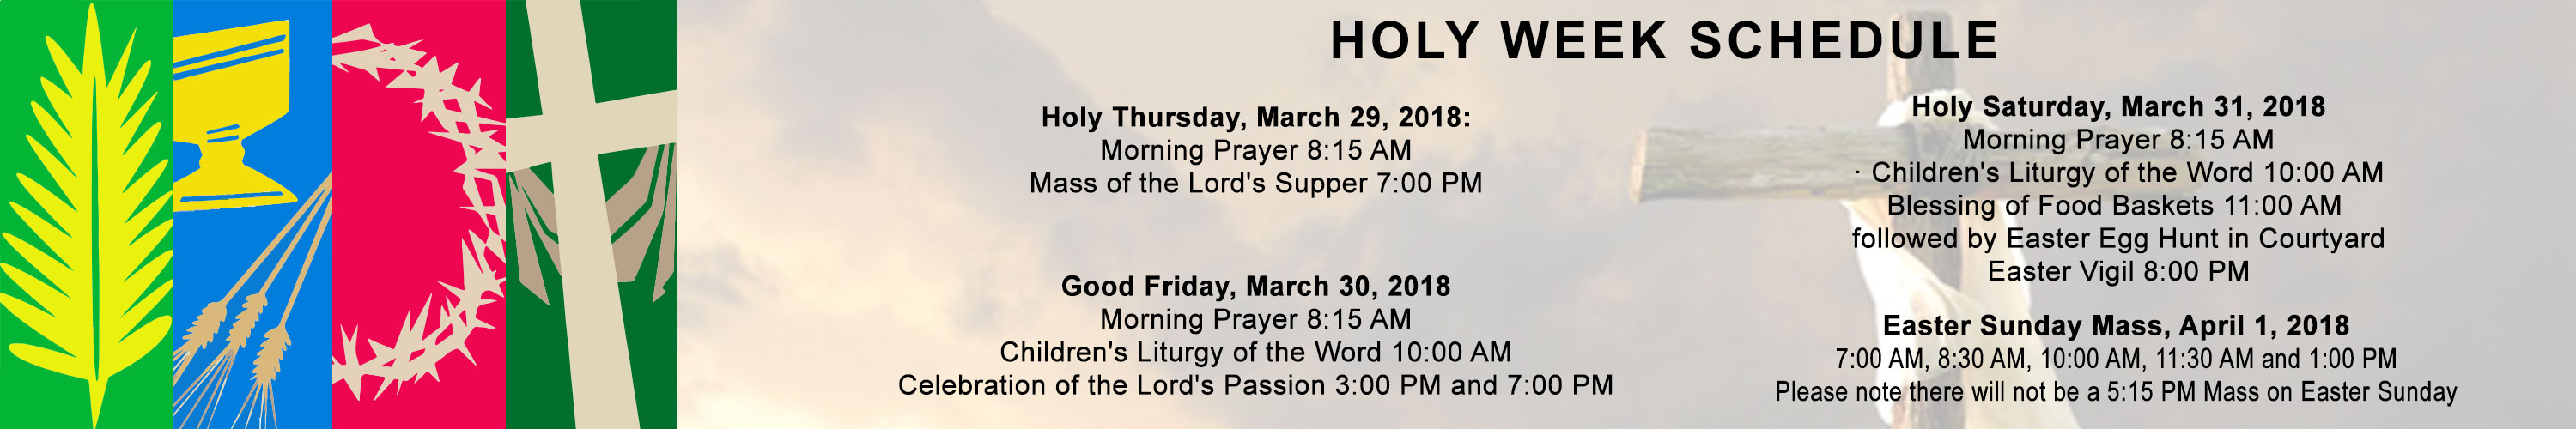 holy-week-schedule-2018